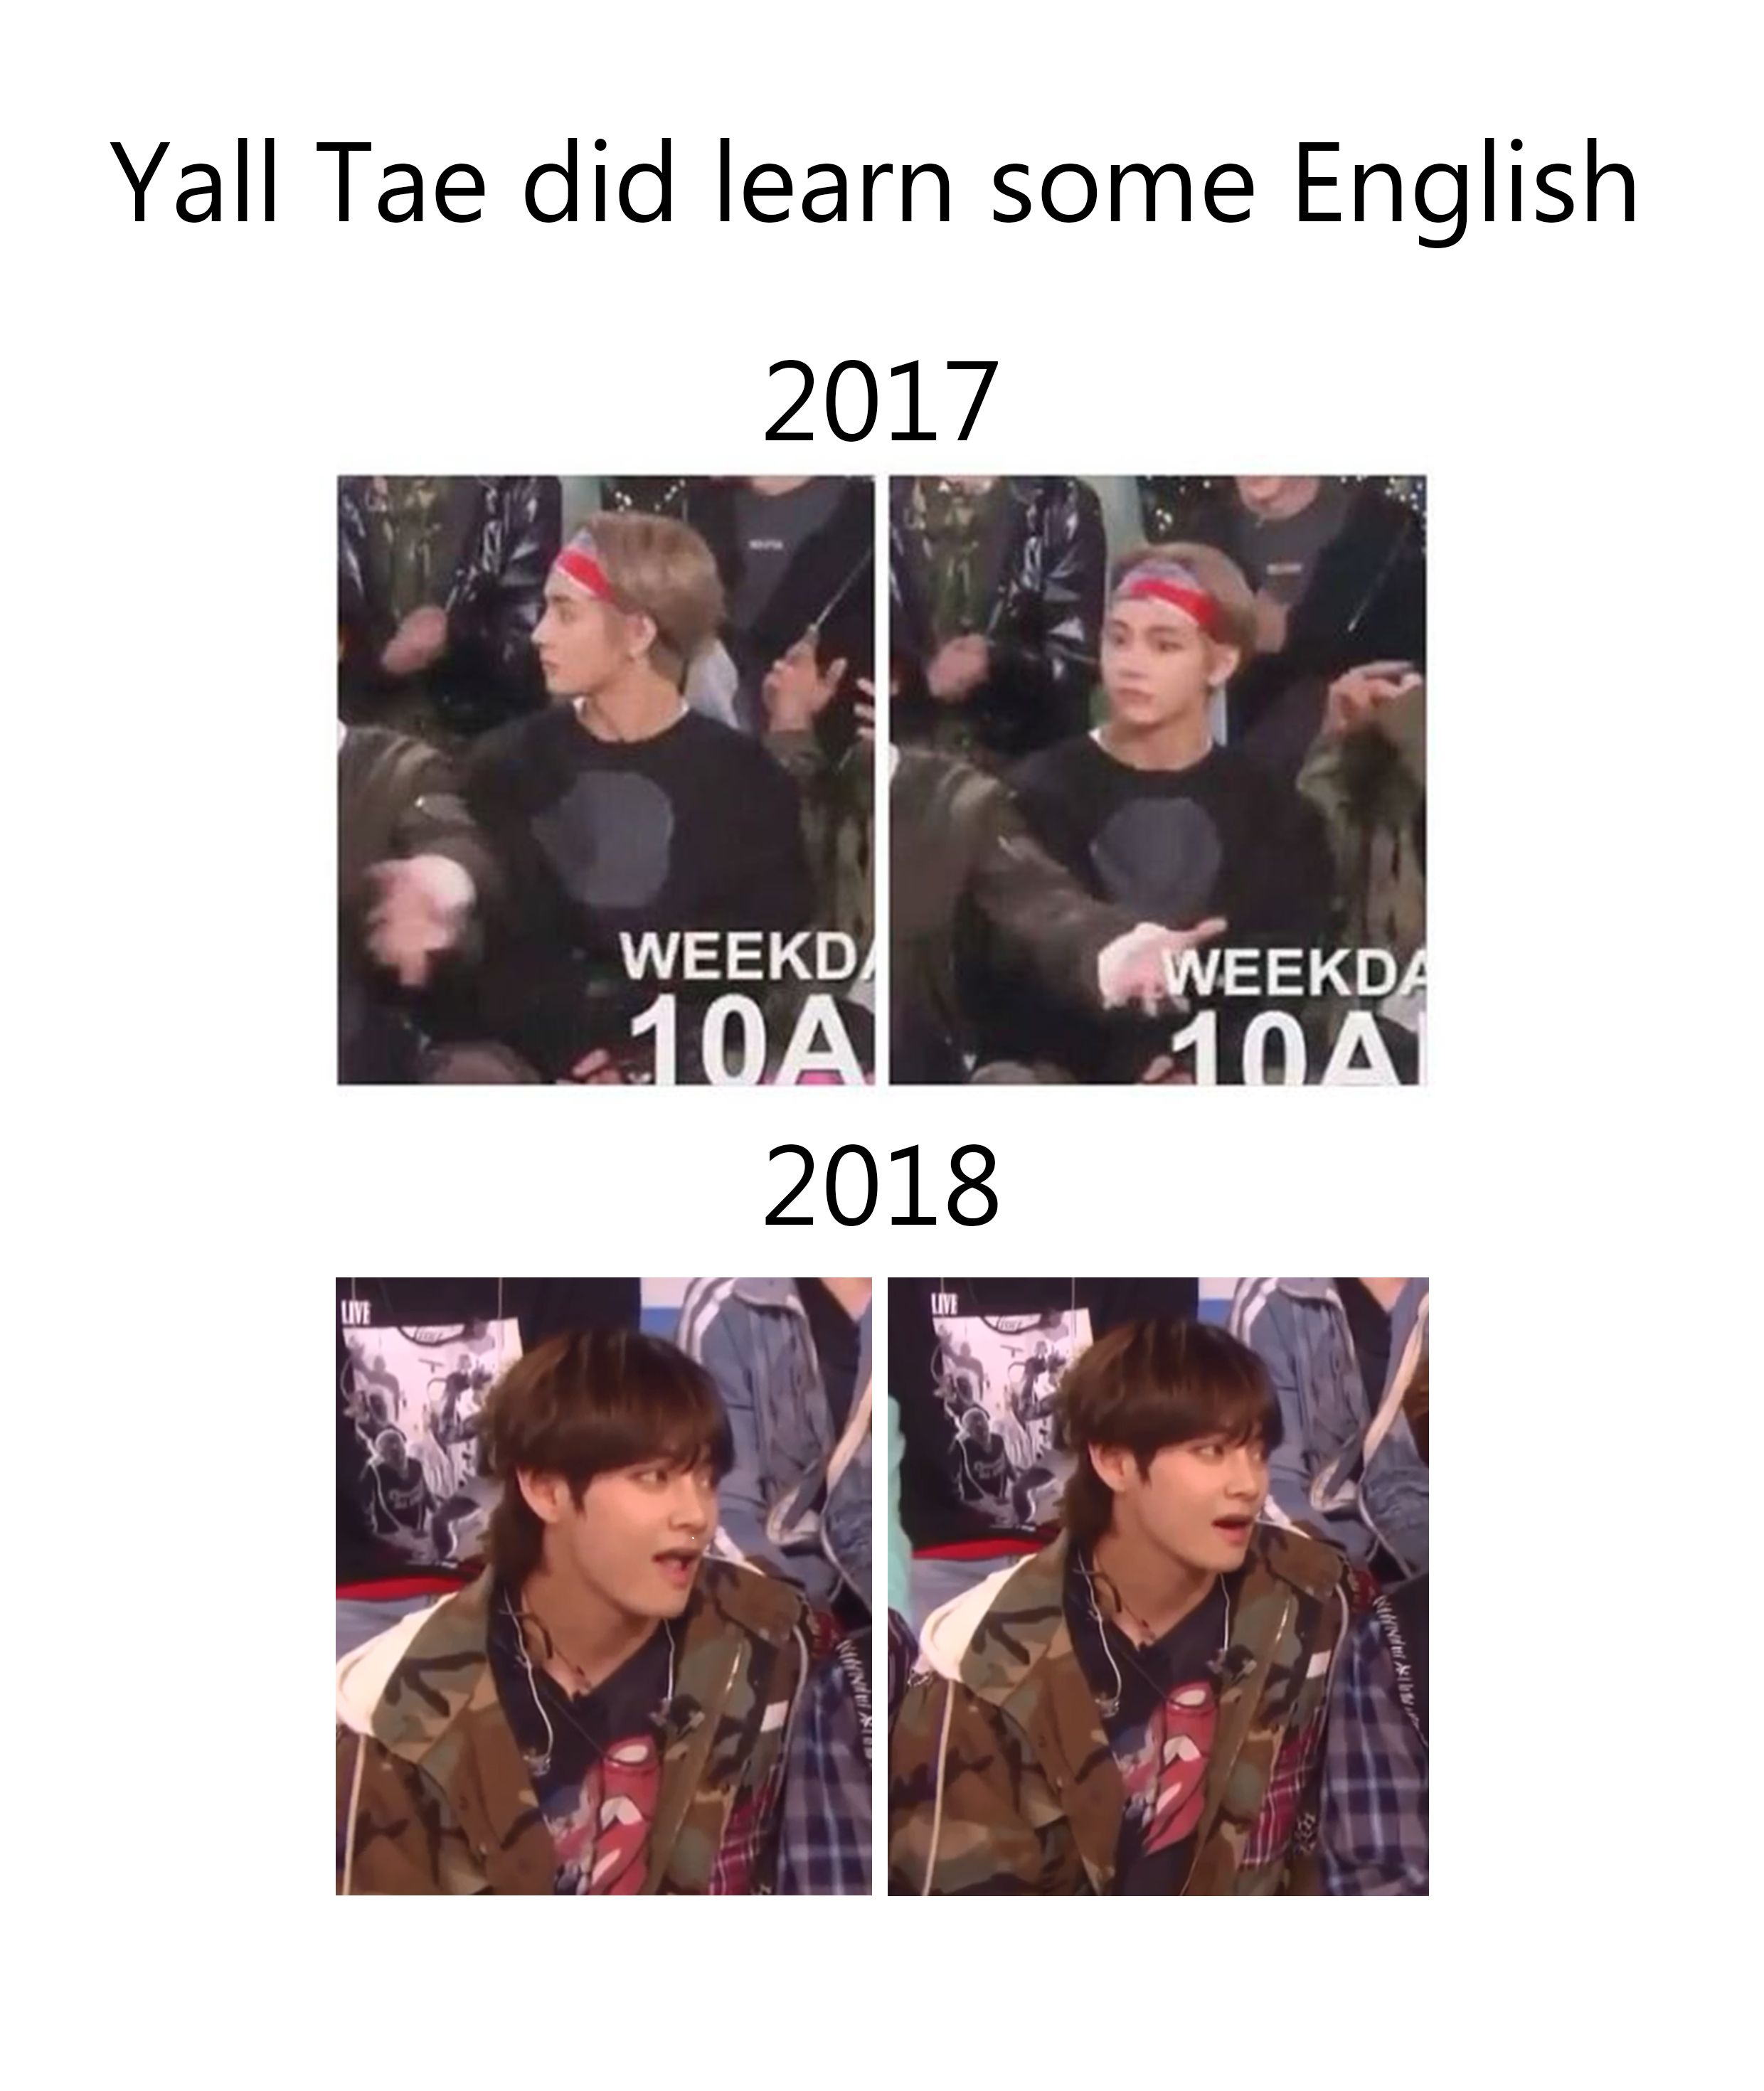 Lol Xd Welp I Can See The Difference When Ellen S Mentioning The Dating Stuff This Year And Last Year Lol Ma Baby Got So Bts Funny Bts Boys Bts Taehyung